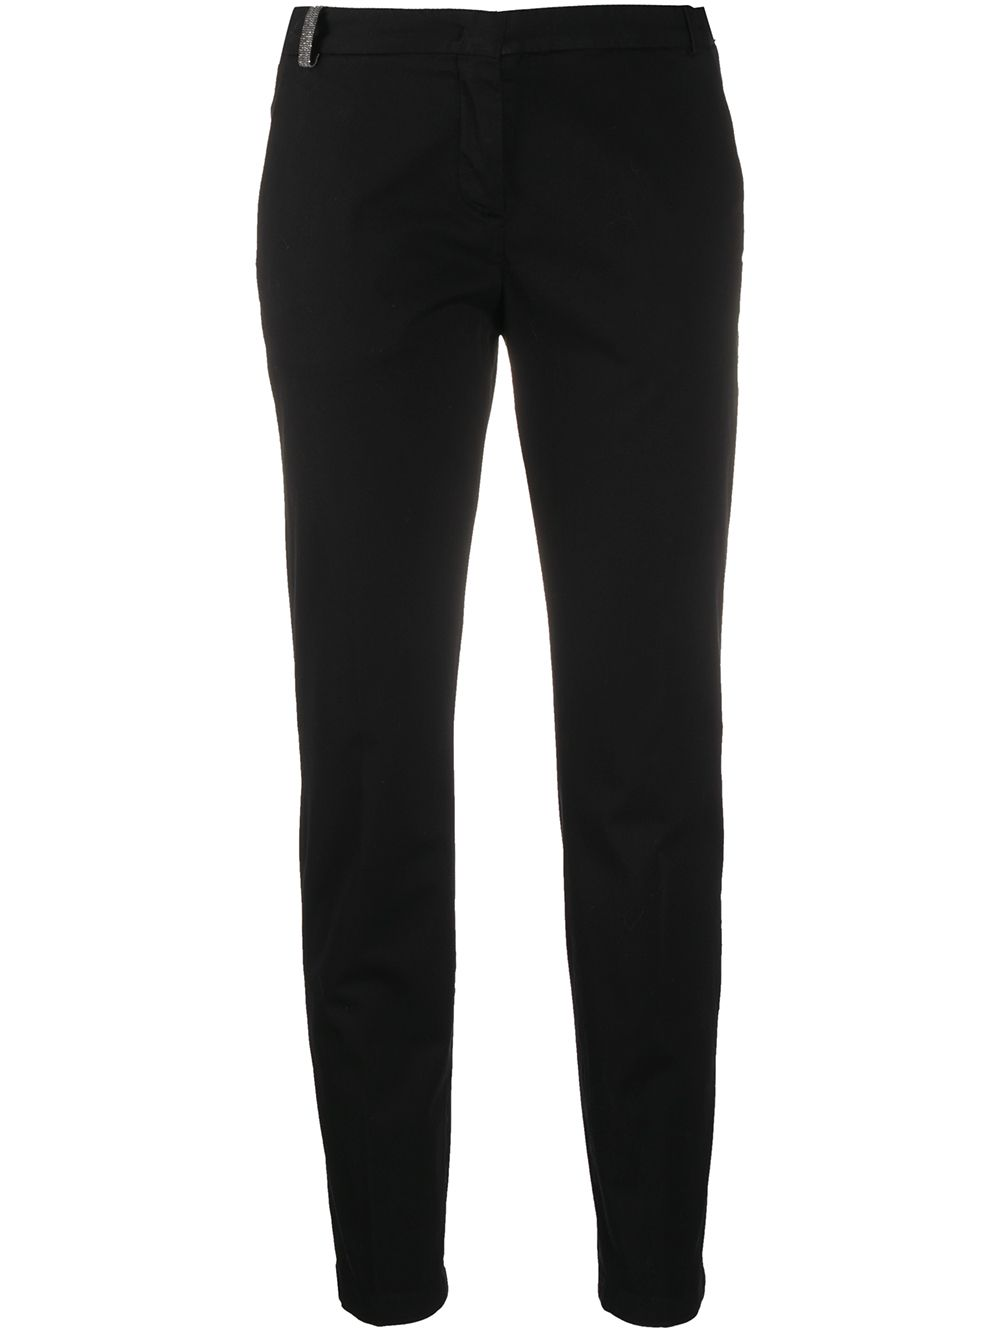 Assisi Cotton Trousers